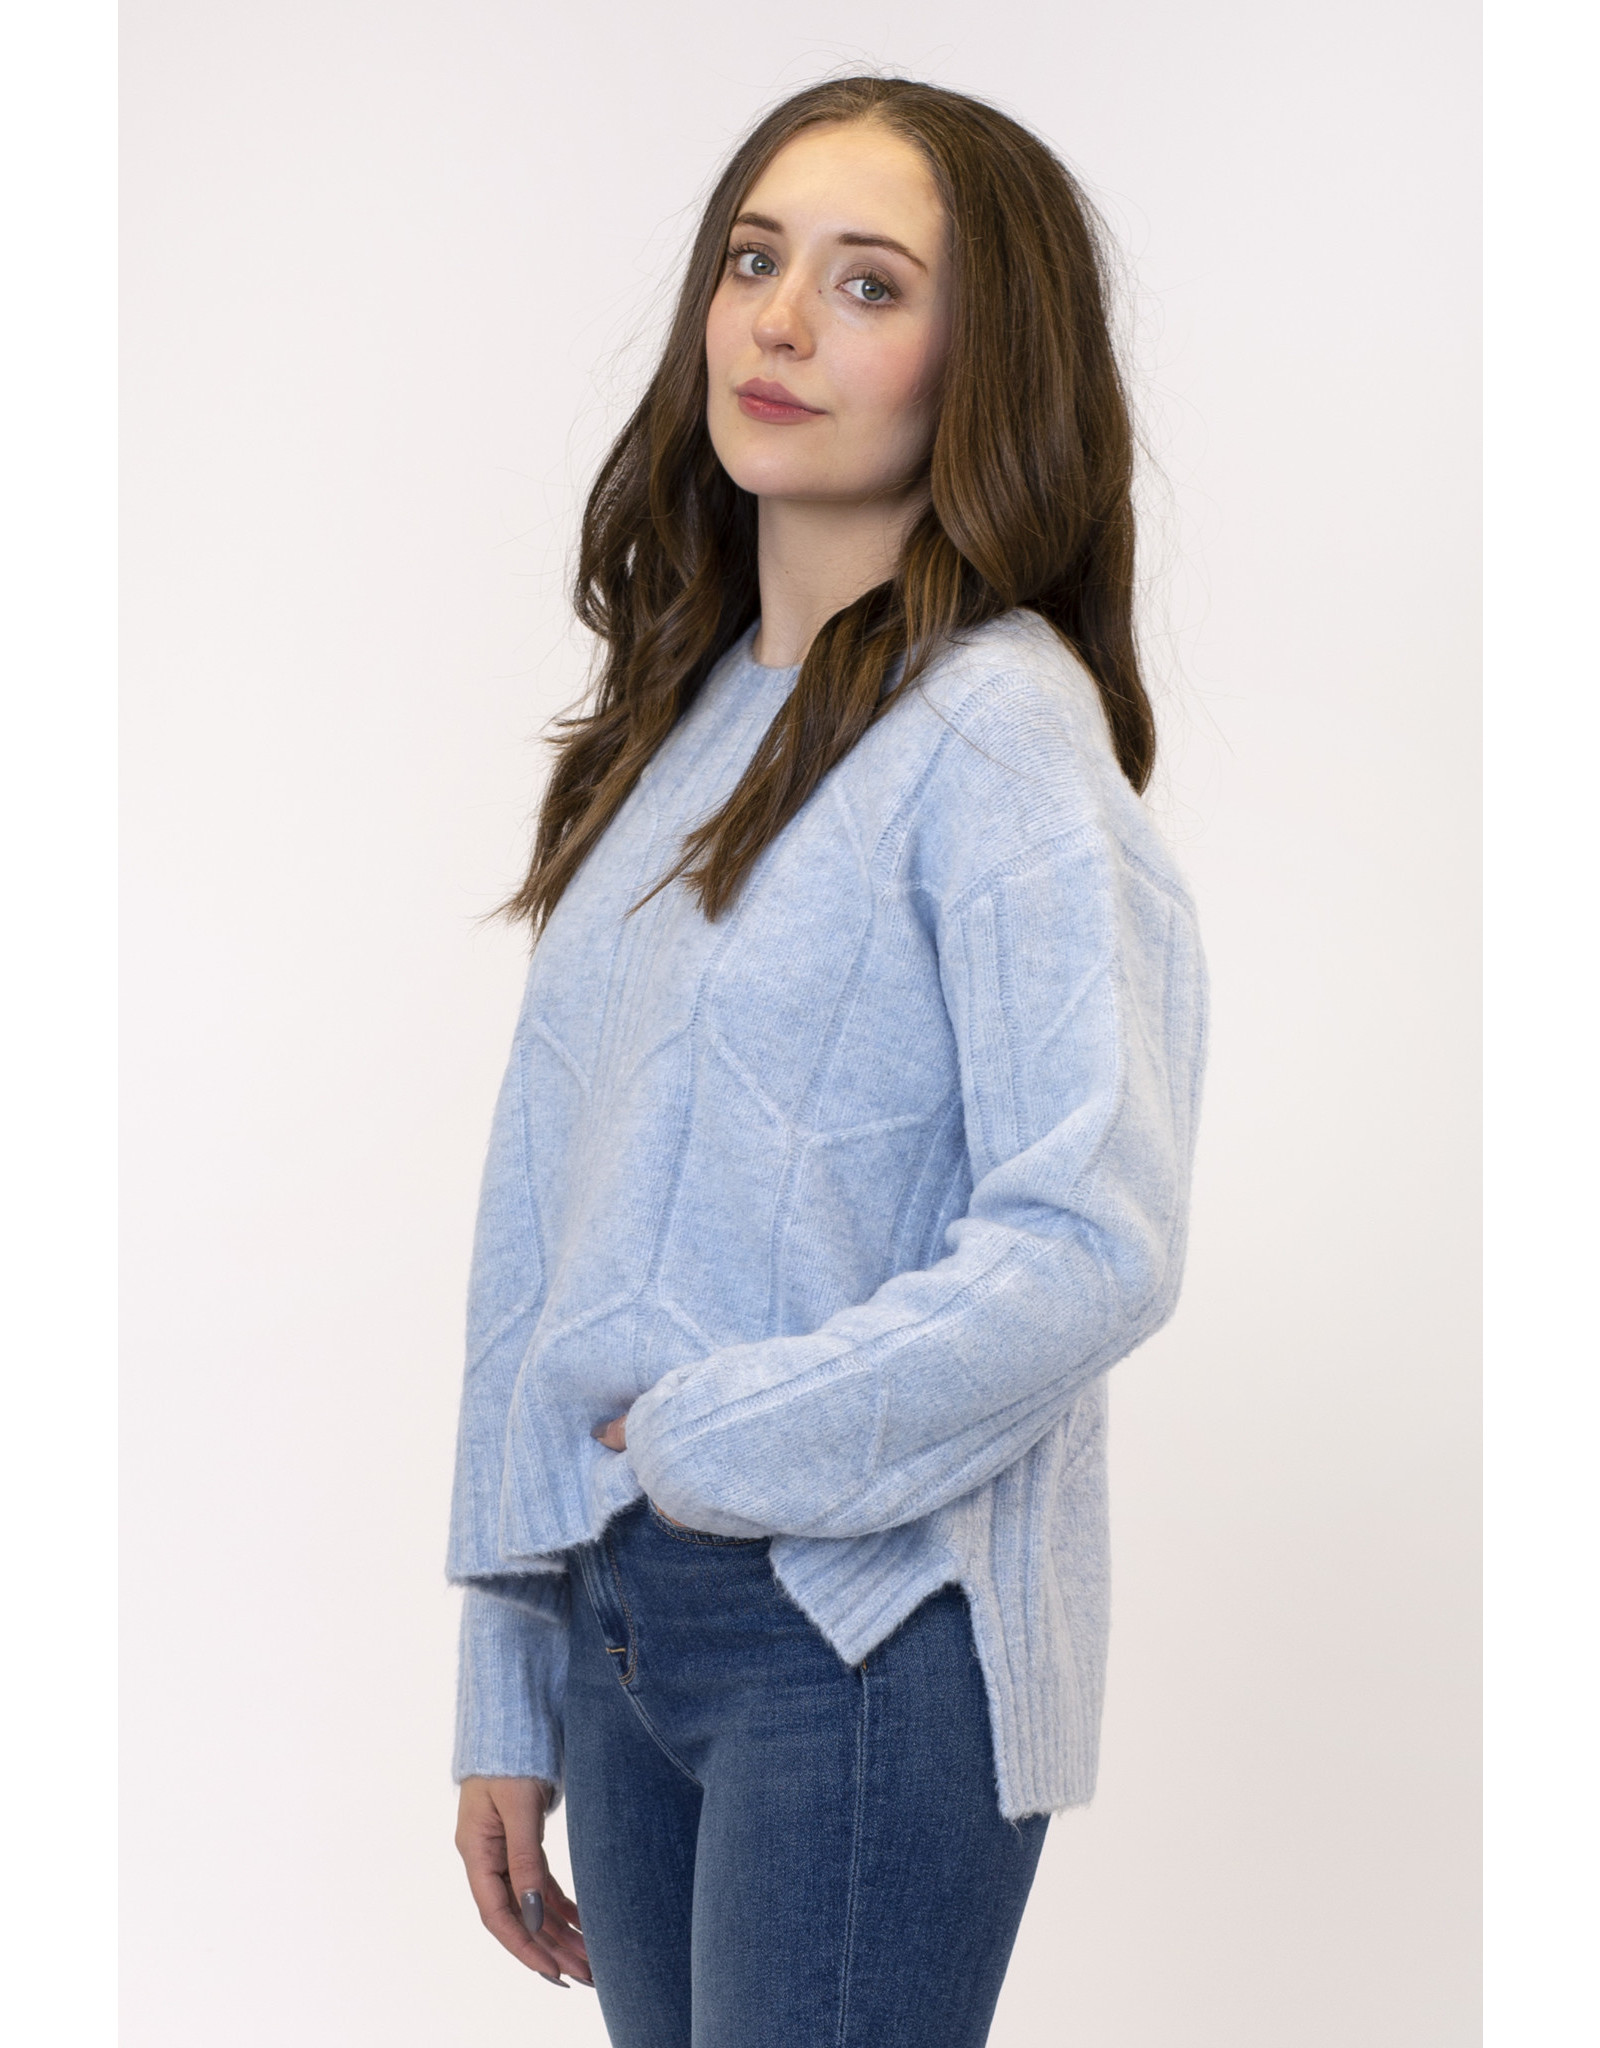 Lyla & Luxe Chrissy Textured Sweater